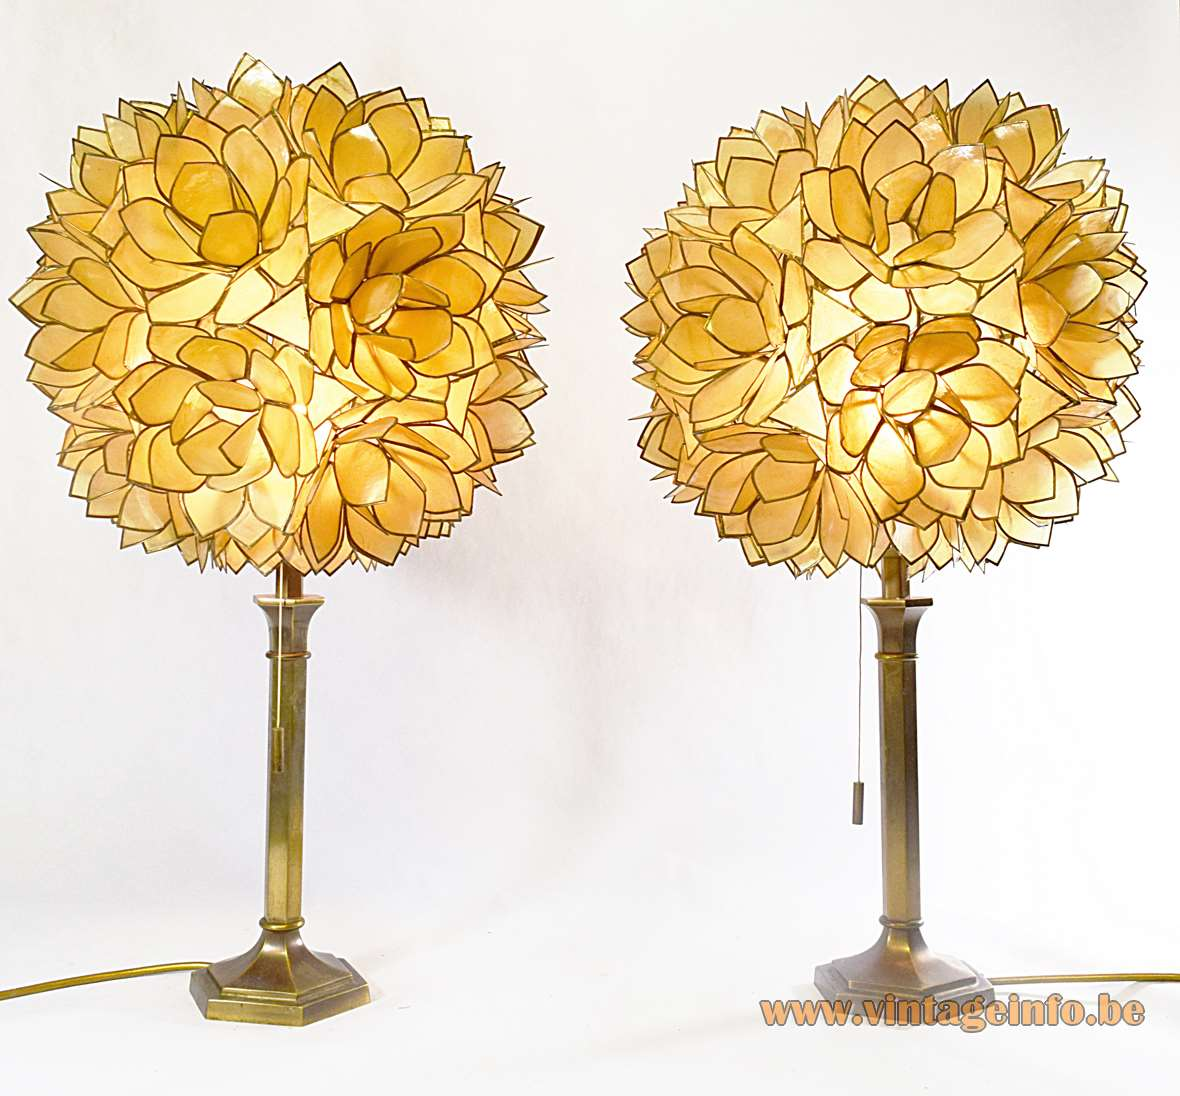 Placuna placenta table lamps brass hexagonal rod Capiz shells globe 1960s 1970s vintage windowpane oyster